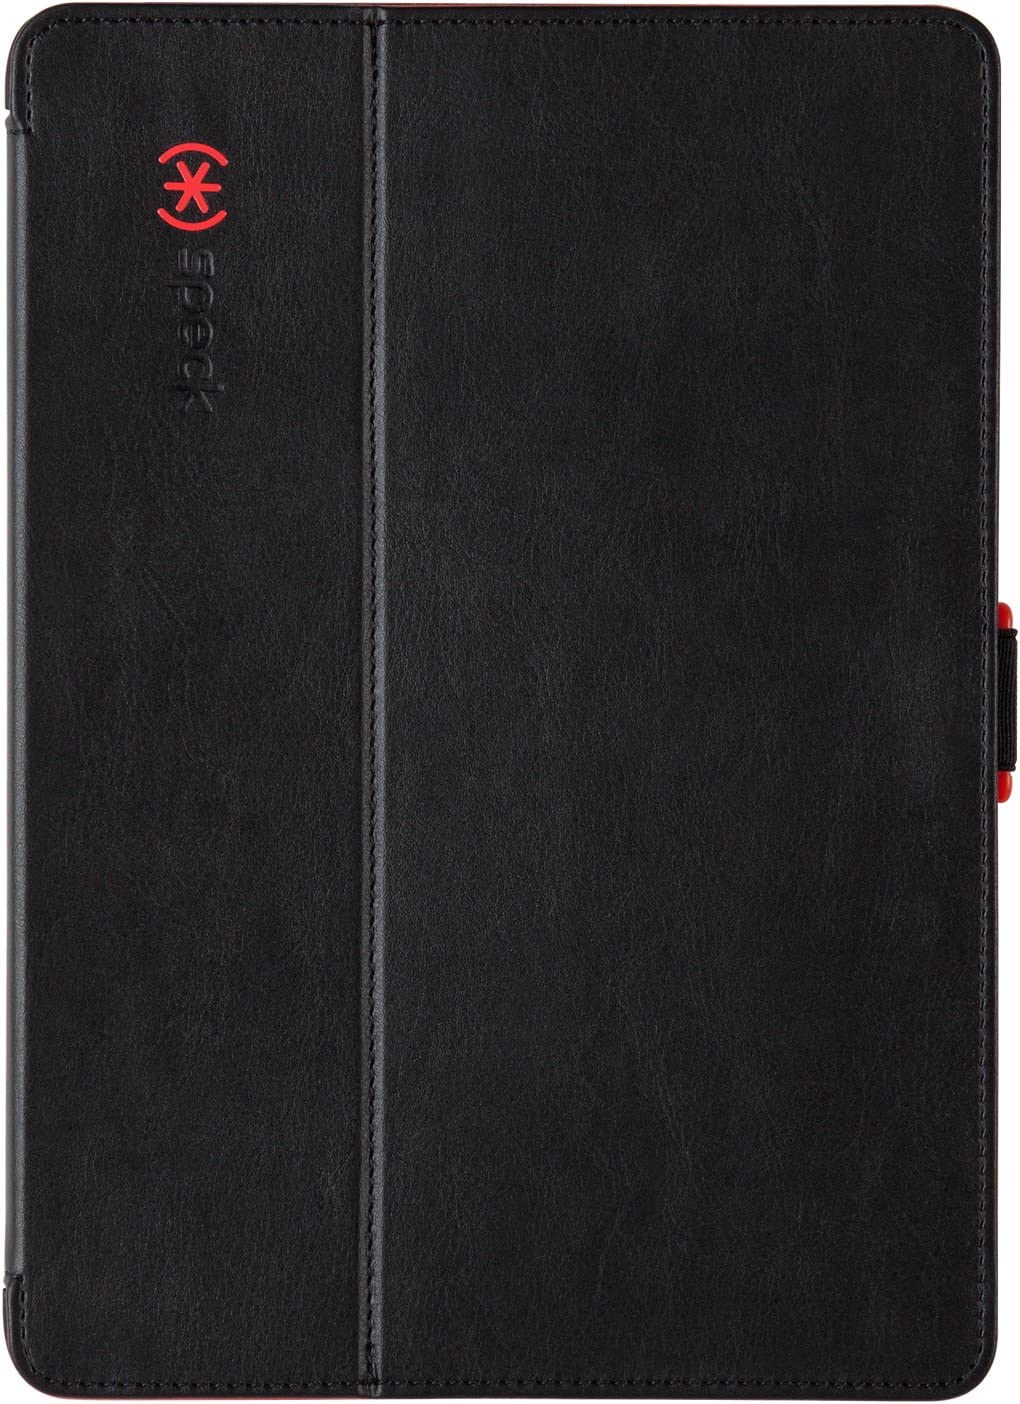 Speck Products StyleFolio Case & Stand for iPad Air 1 ONLY, Black/Poppy Red